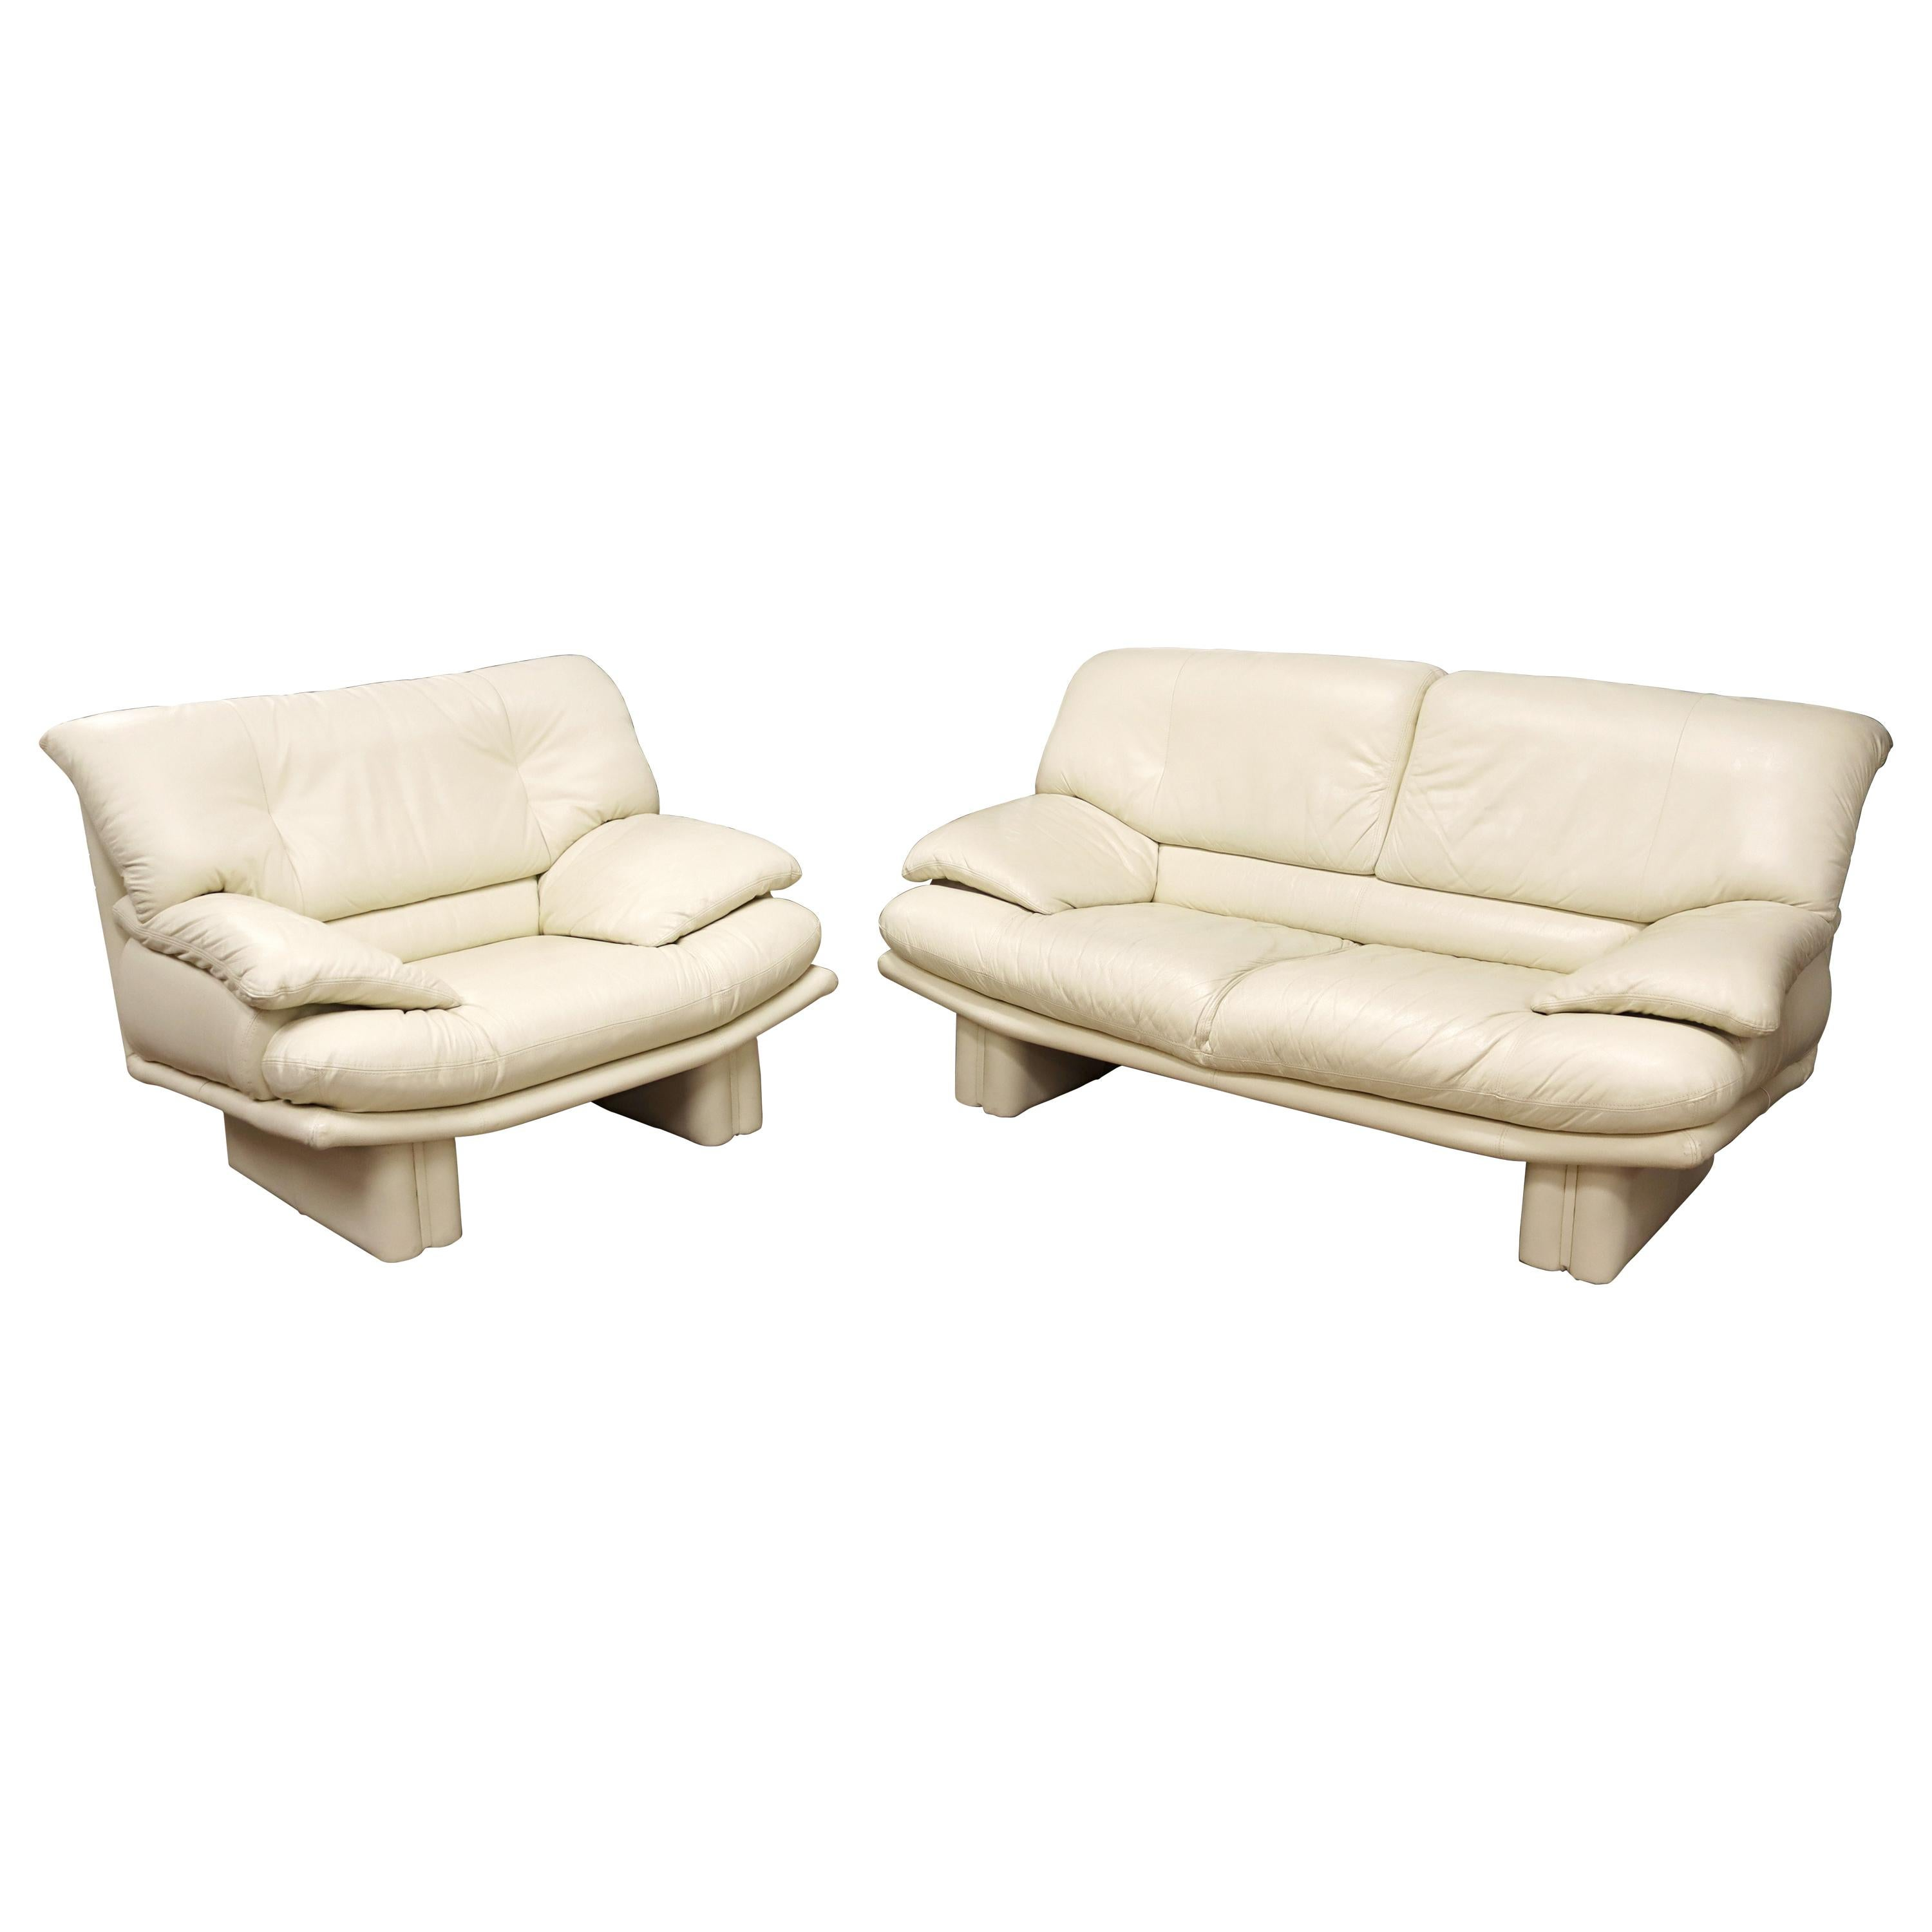 Post Modern Roche Bobois 2 Piece Draped Leather Sofa Loveseat with Chair